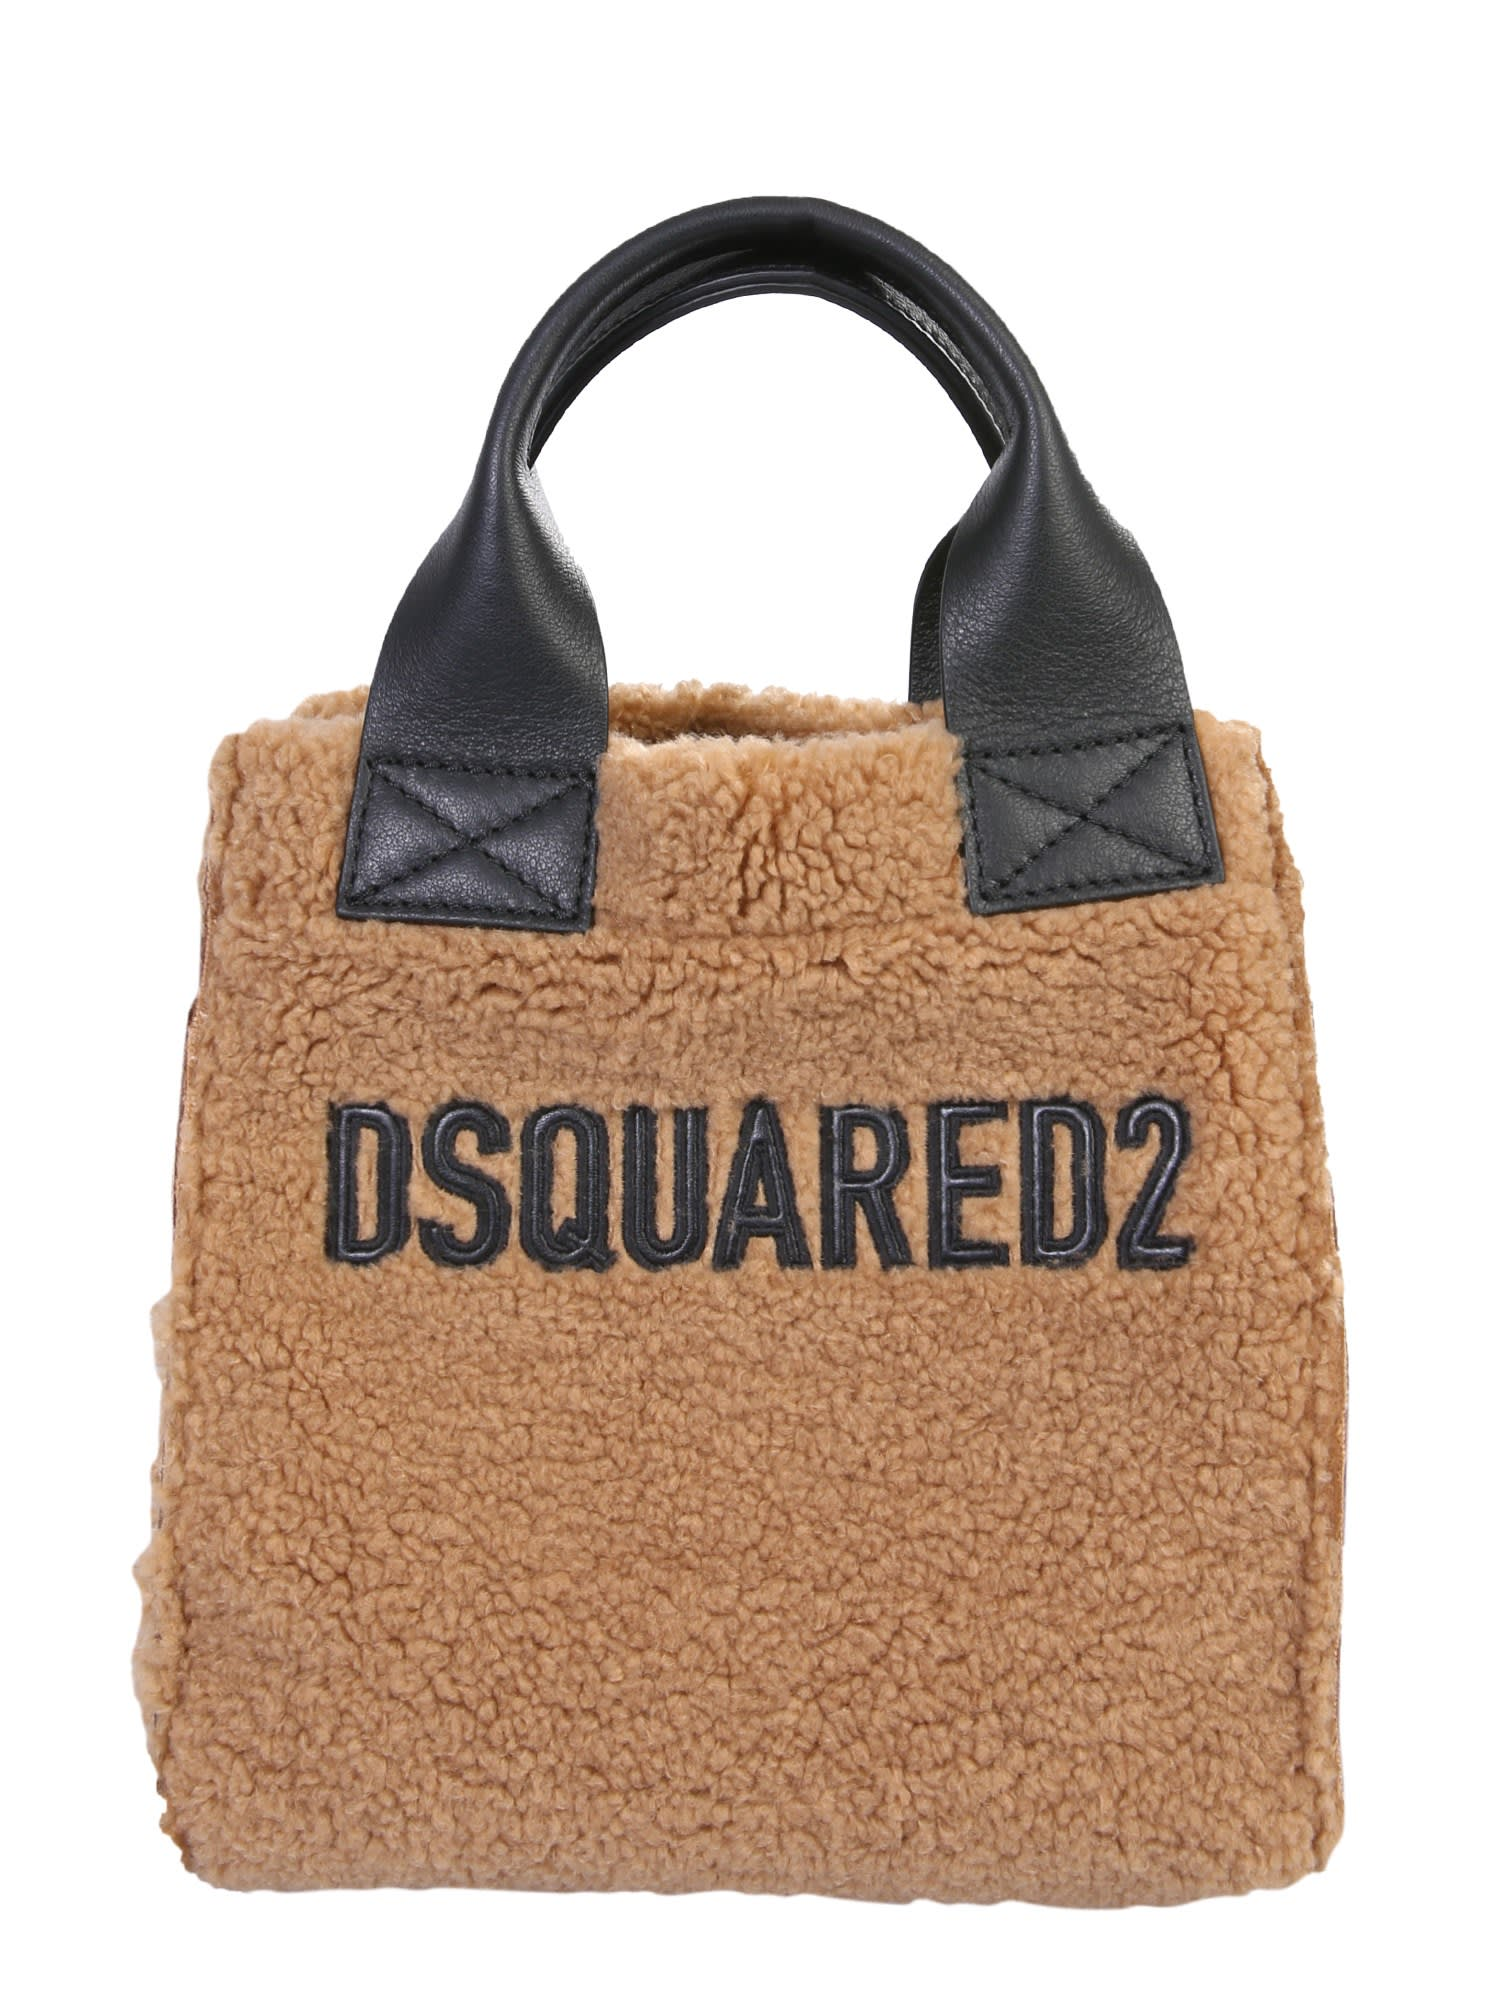 Dsquared2 SHOPPING BAG WITH LOGO